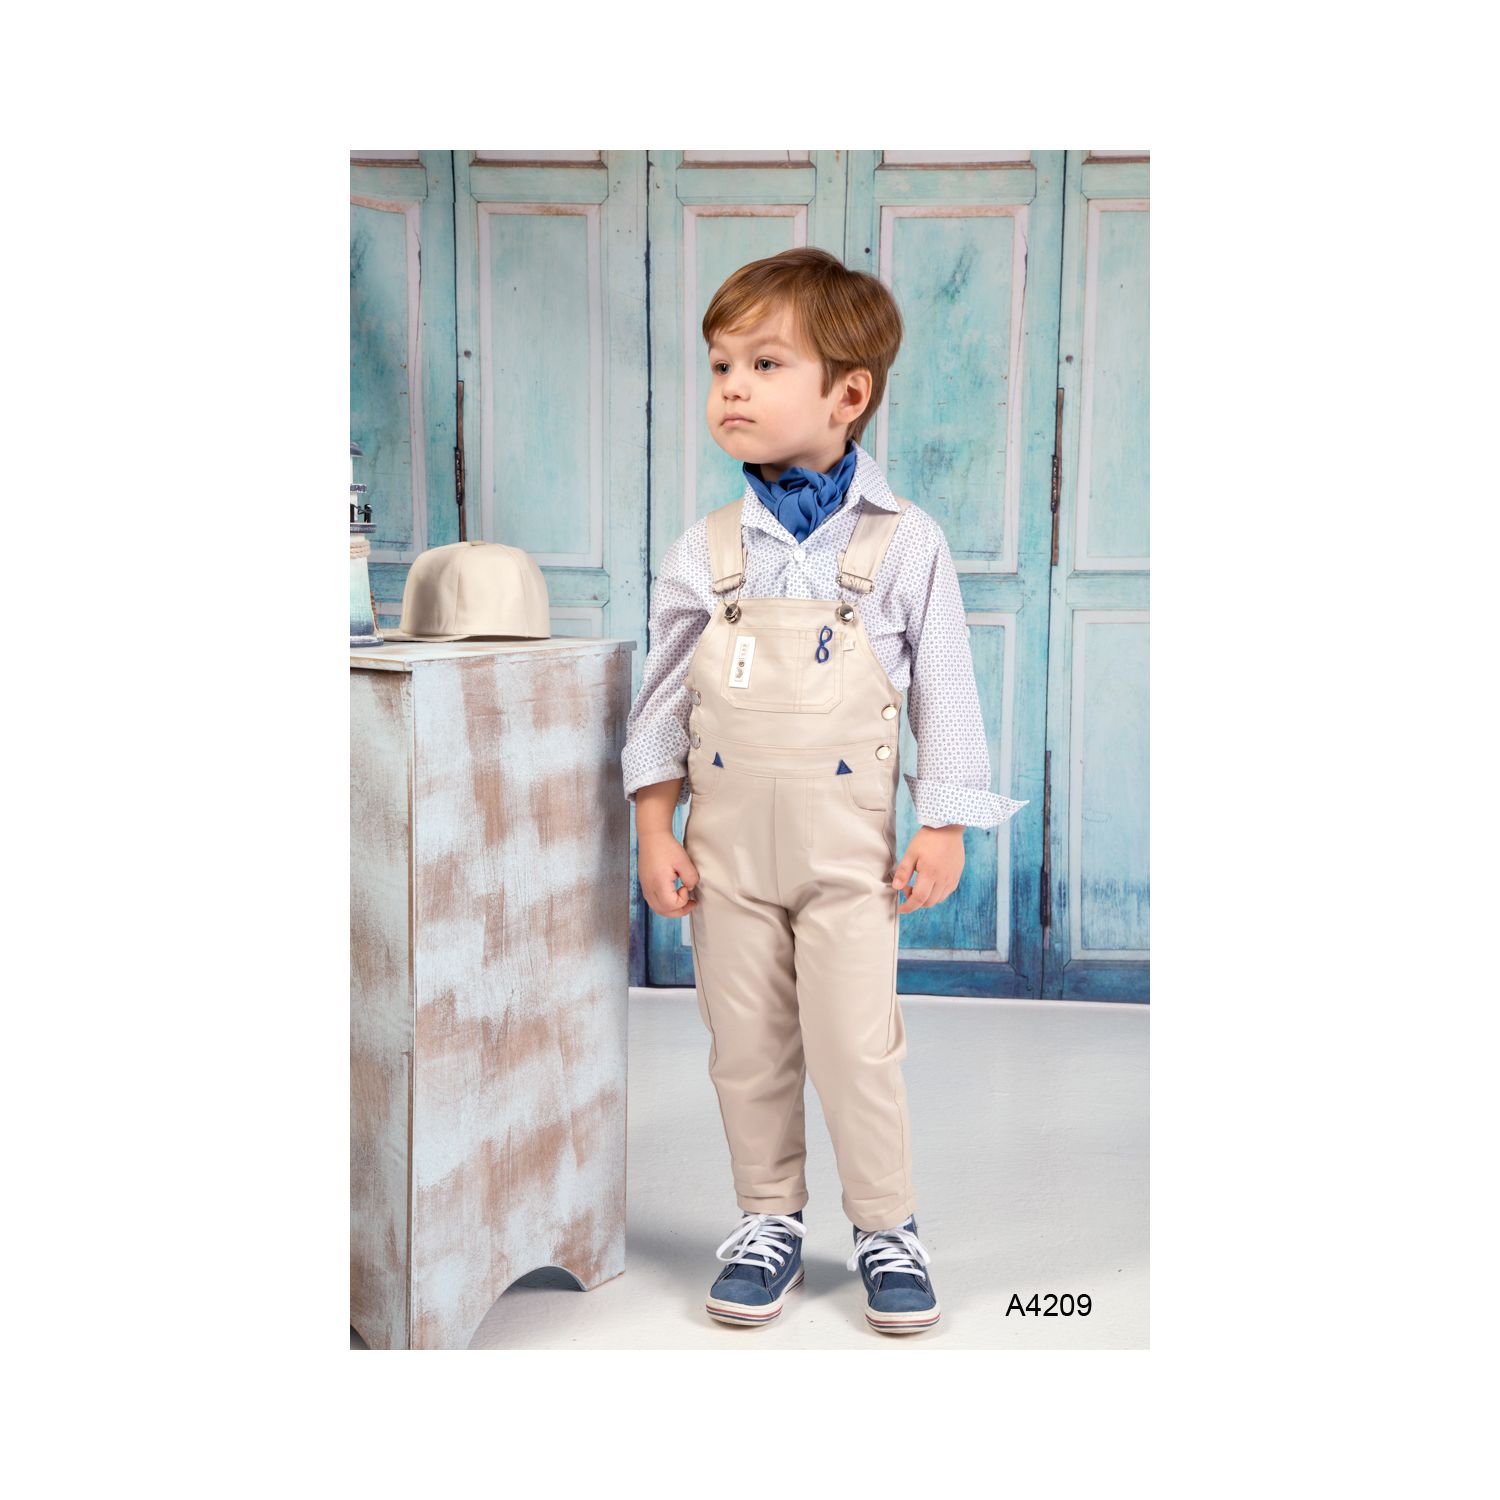 Baptism clothes salopete for boy A4209